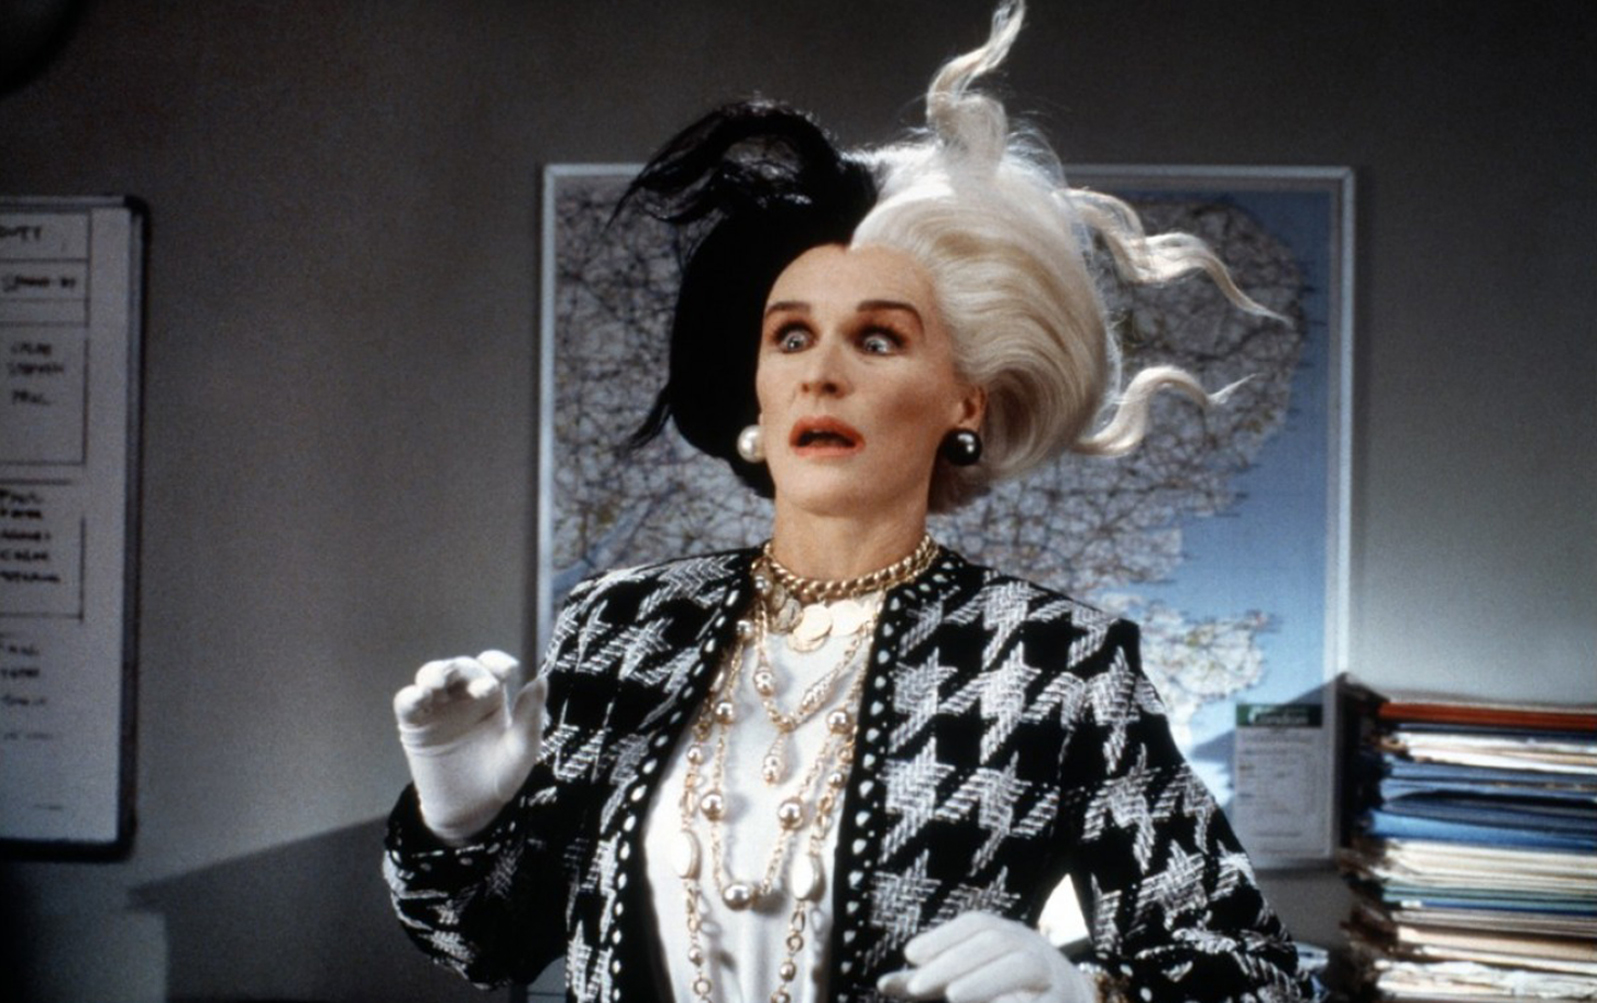 Glenn Close chewing scenery in grand style as Cruella De Ville in 101 Dalmatians (1996)